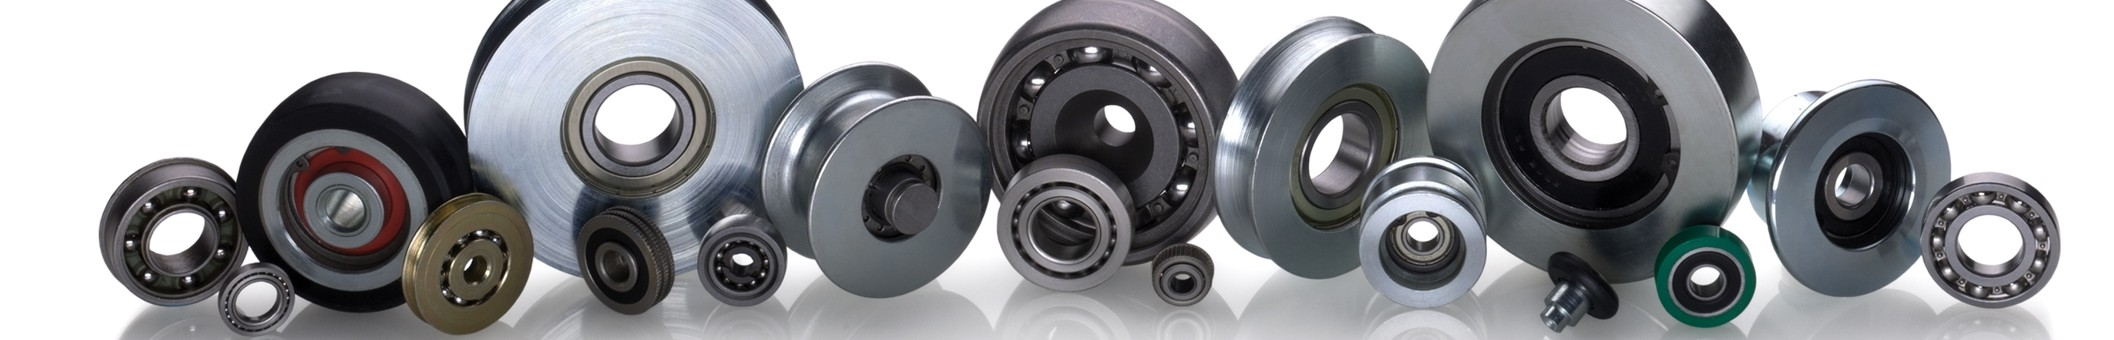 Bearings_Group